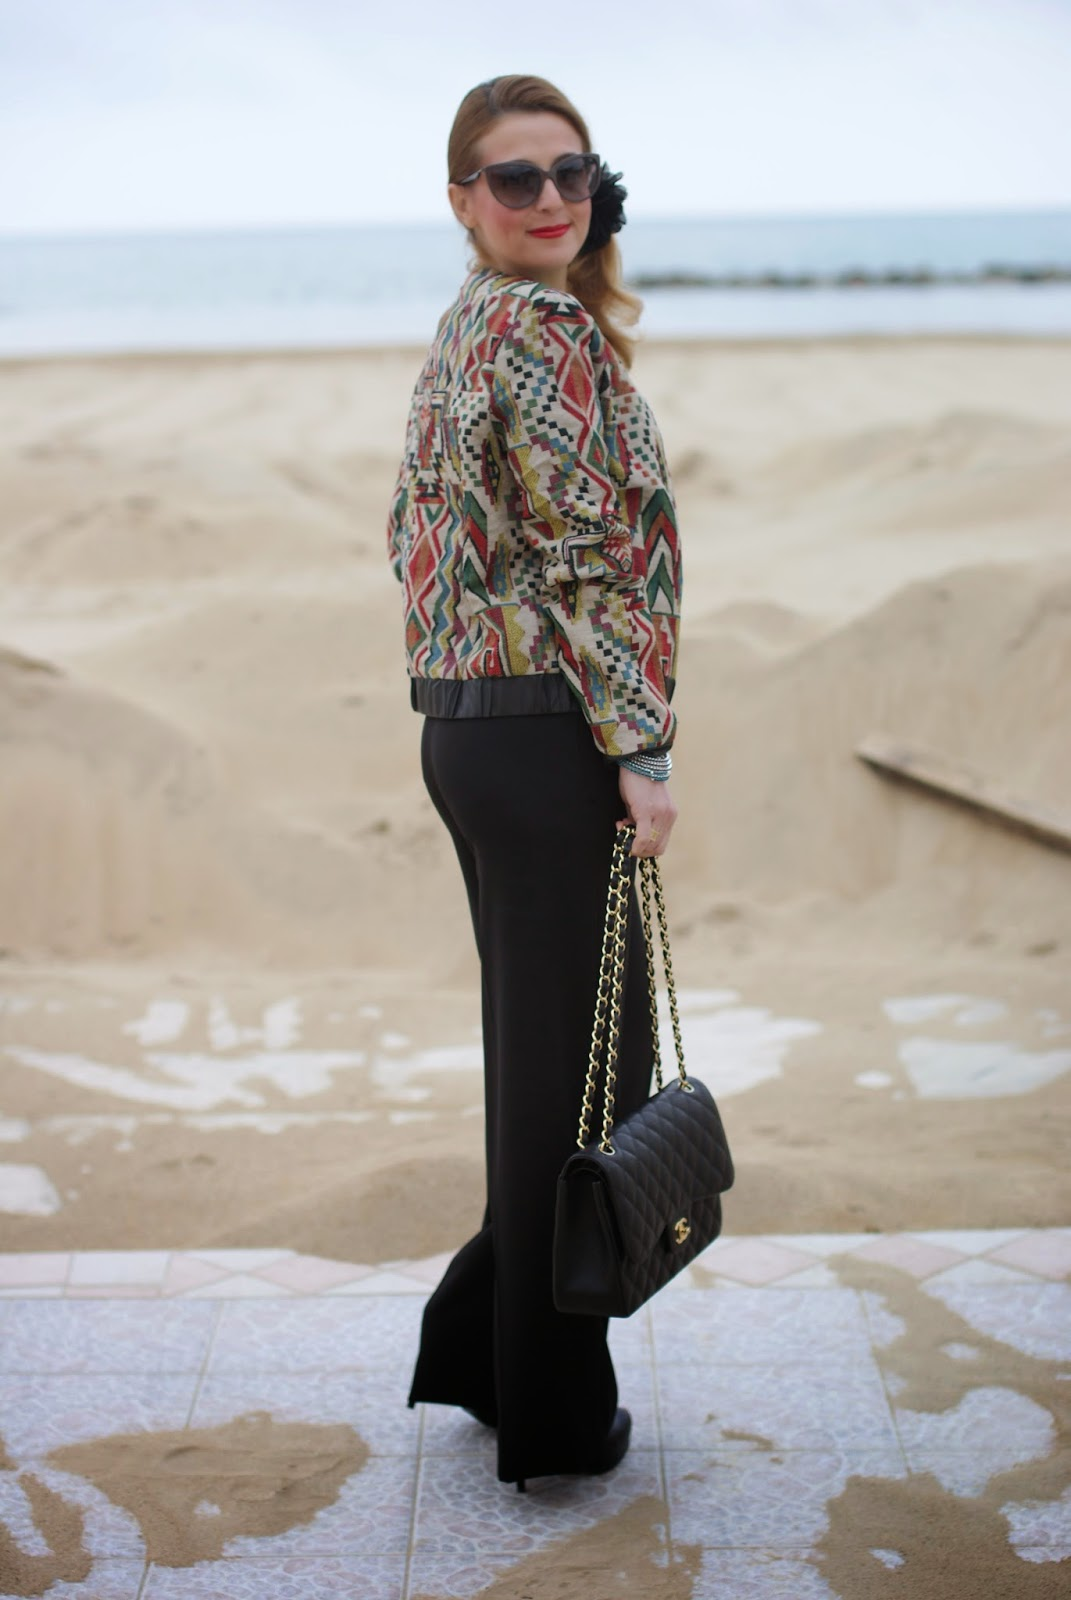 Chanel 2.55 classic flap bag, Paramita jacket, Lunatic pantaloni, palazzo pants from back, how to style palazzo trousers, bomber jacket, Moliabal elastico capelli, palazzo pants, Lunatic pantaloni, sided ponytail, Fashion and Cookies fashion blog, fashion blogger